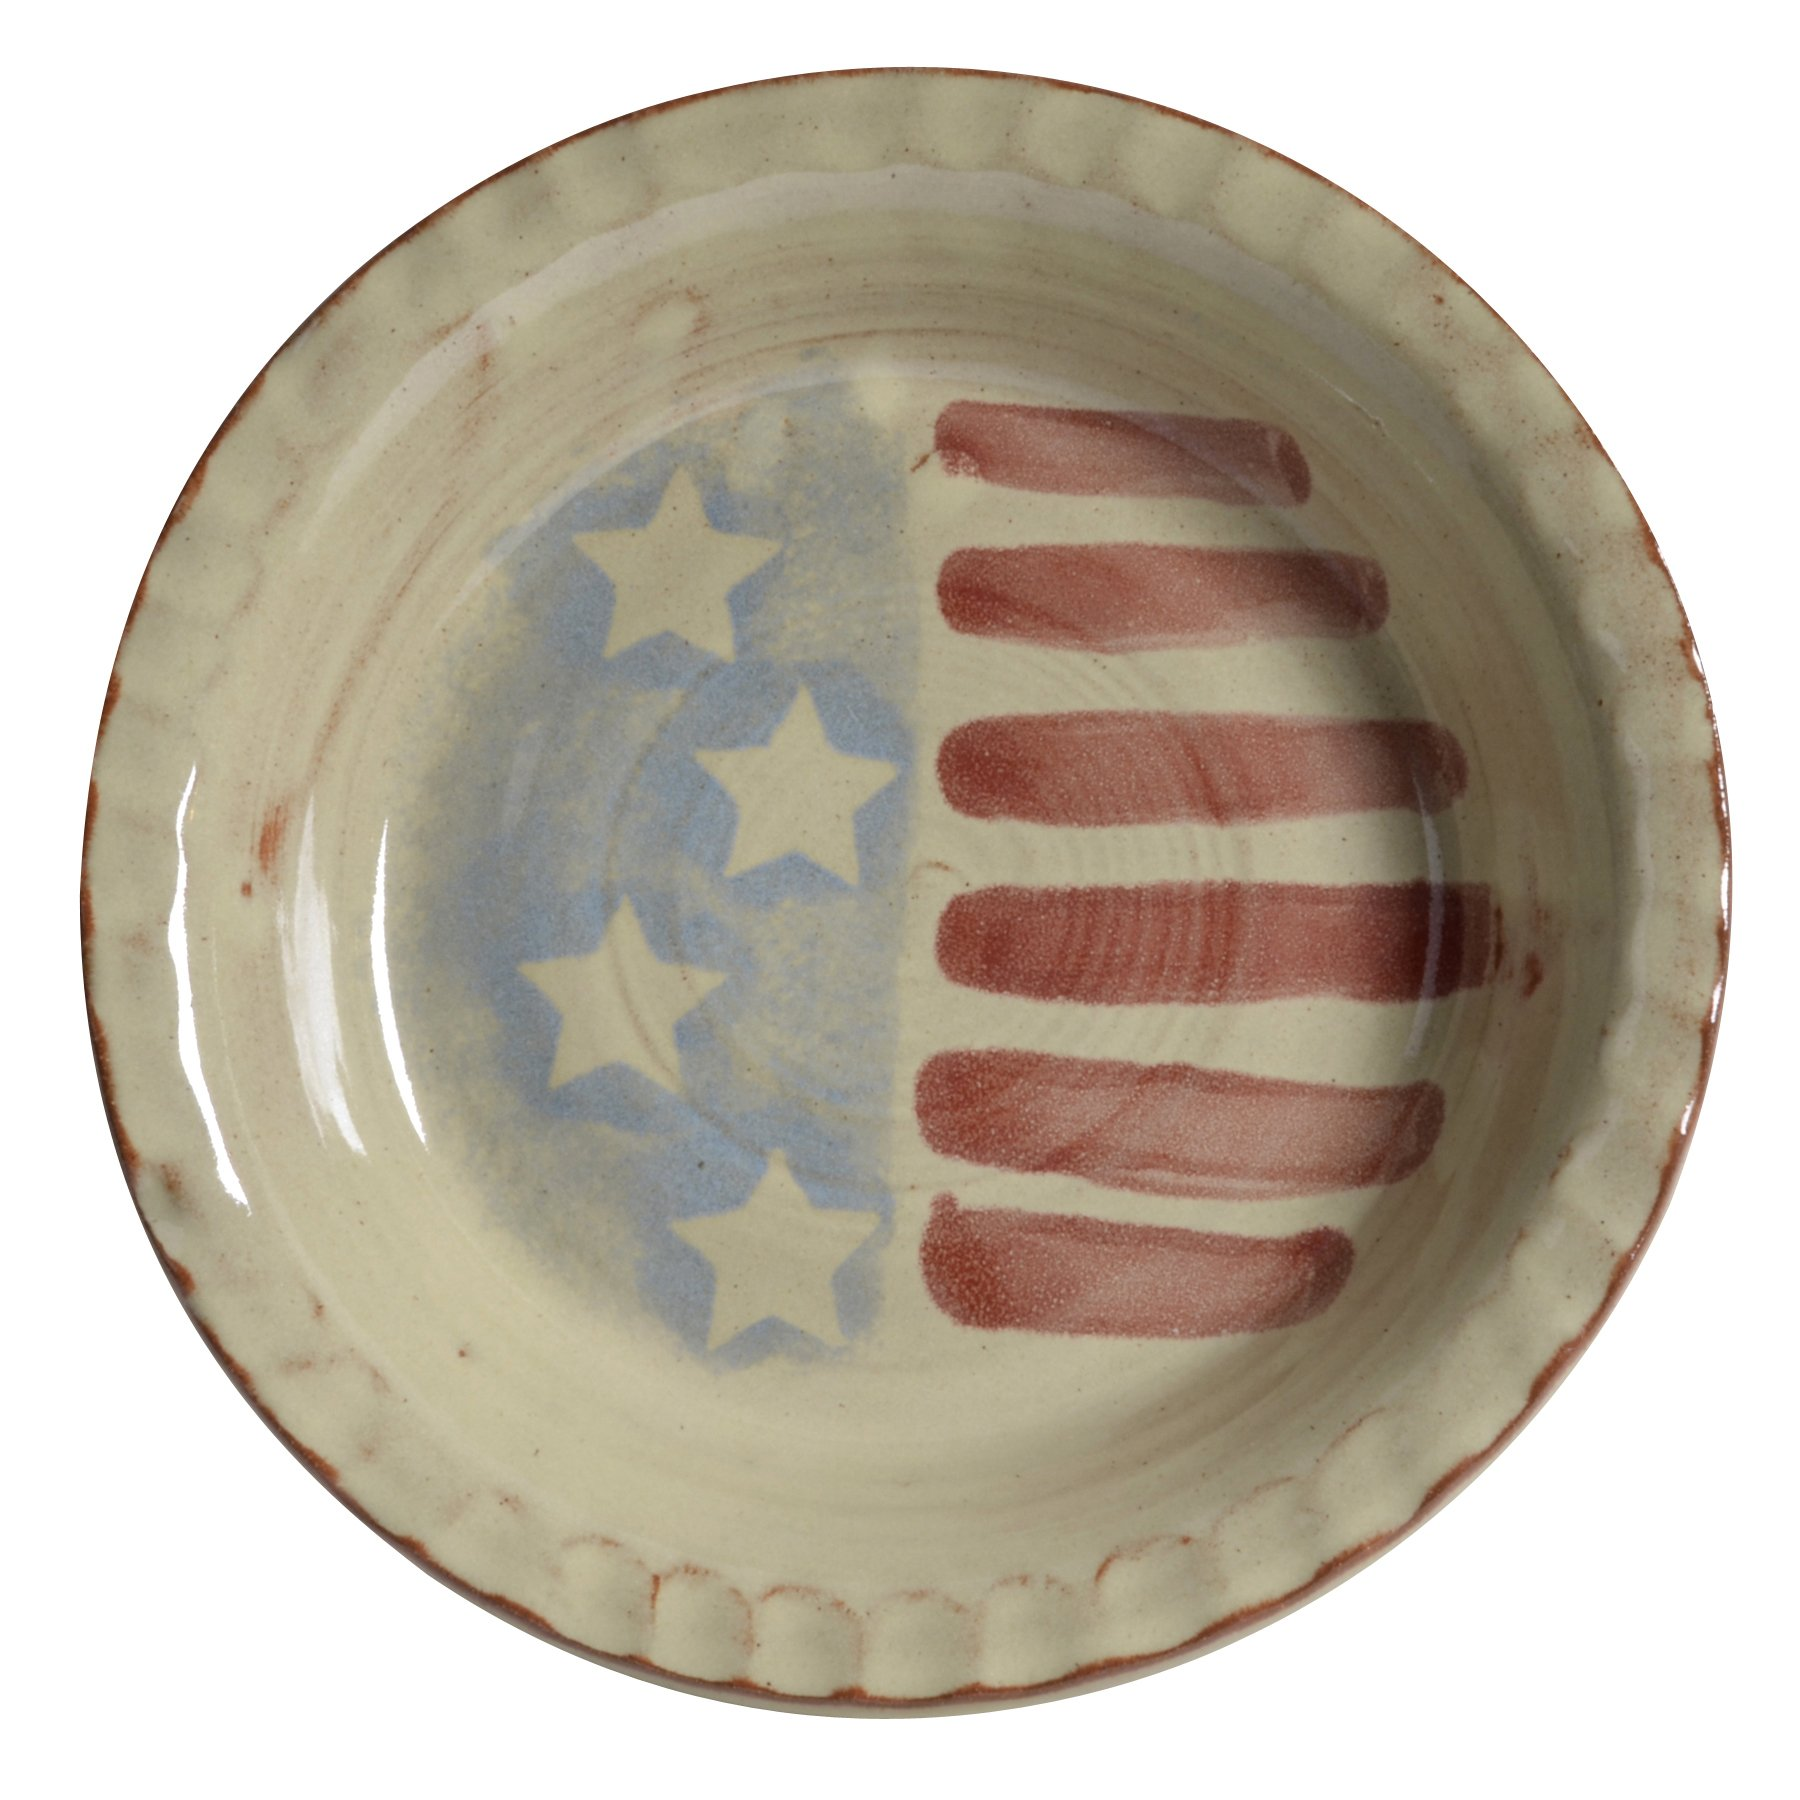 MudWorks Pottery Old Glory 9.5-inch Pie Plate with Fluted Rim